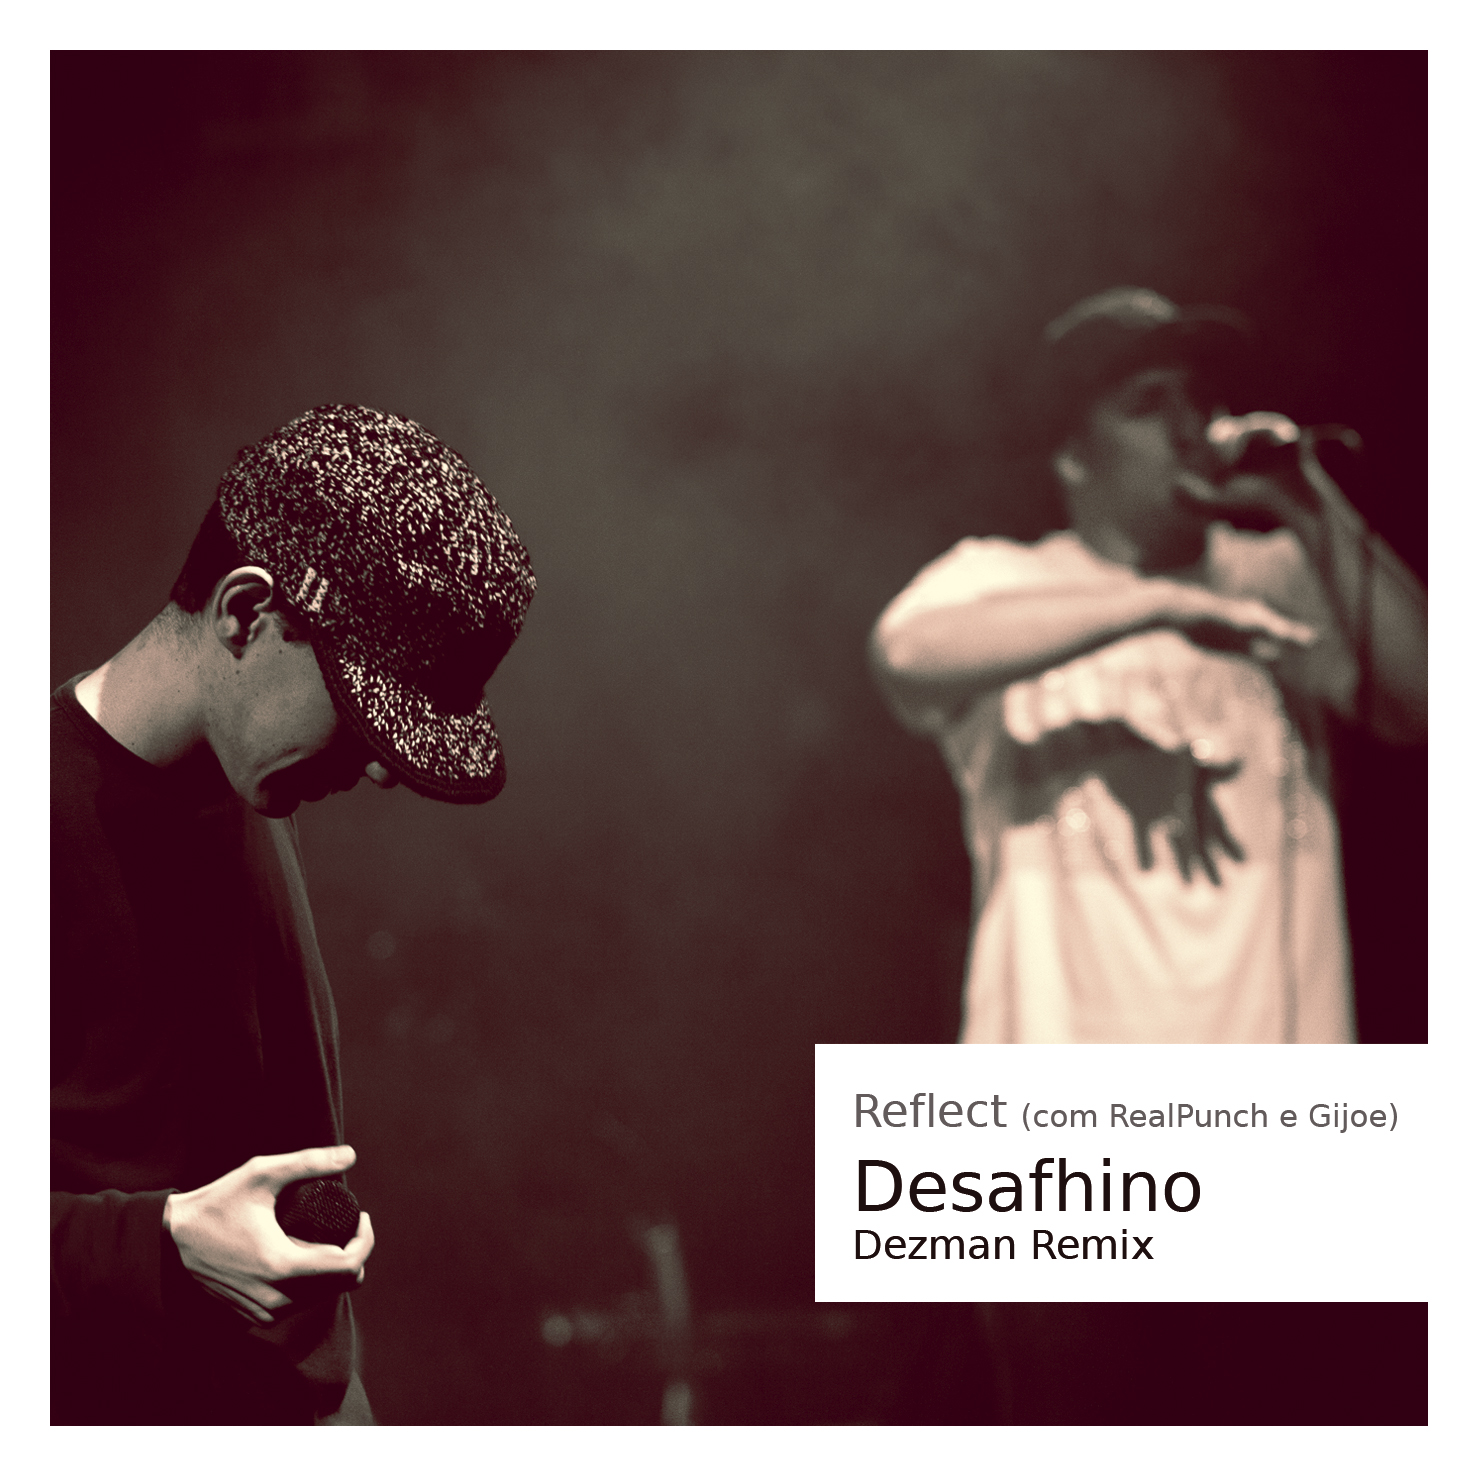 Reflect - Desafhino feat. RealPunch e Gijoe [Dezman Remix]